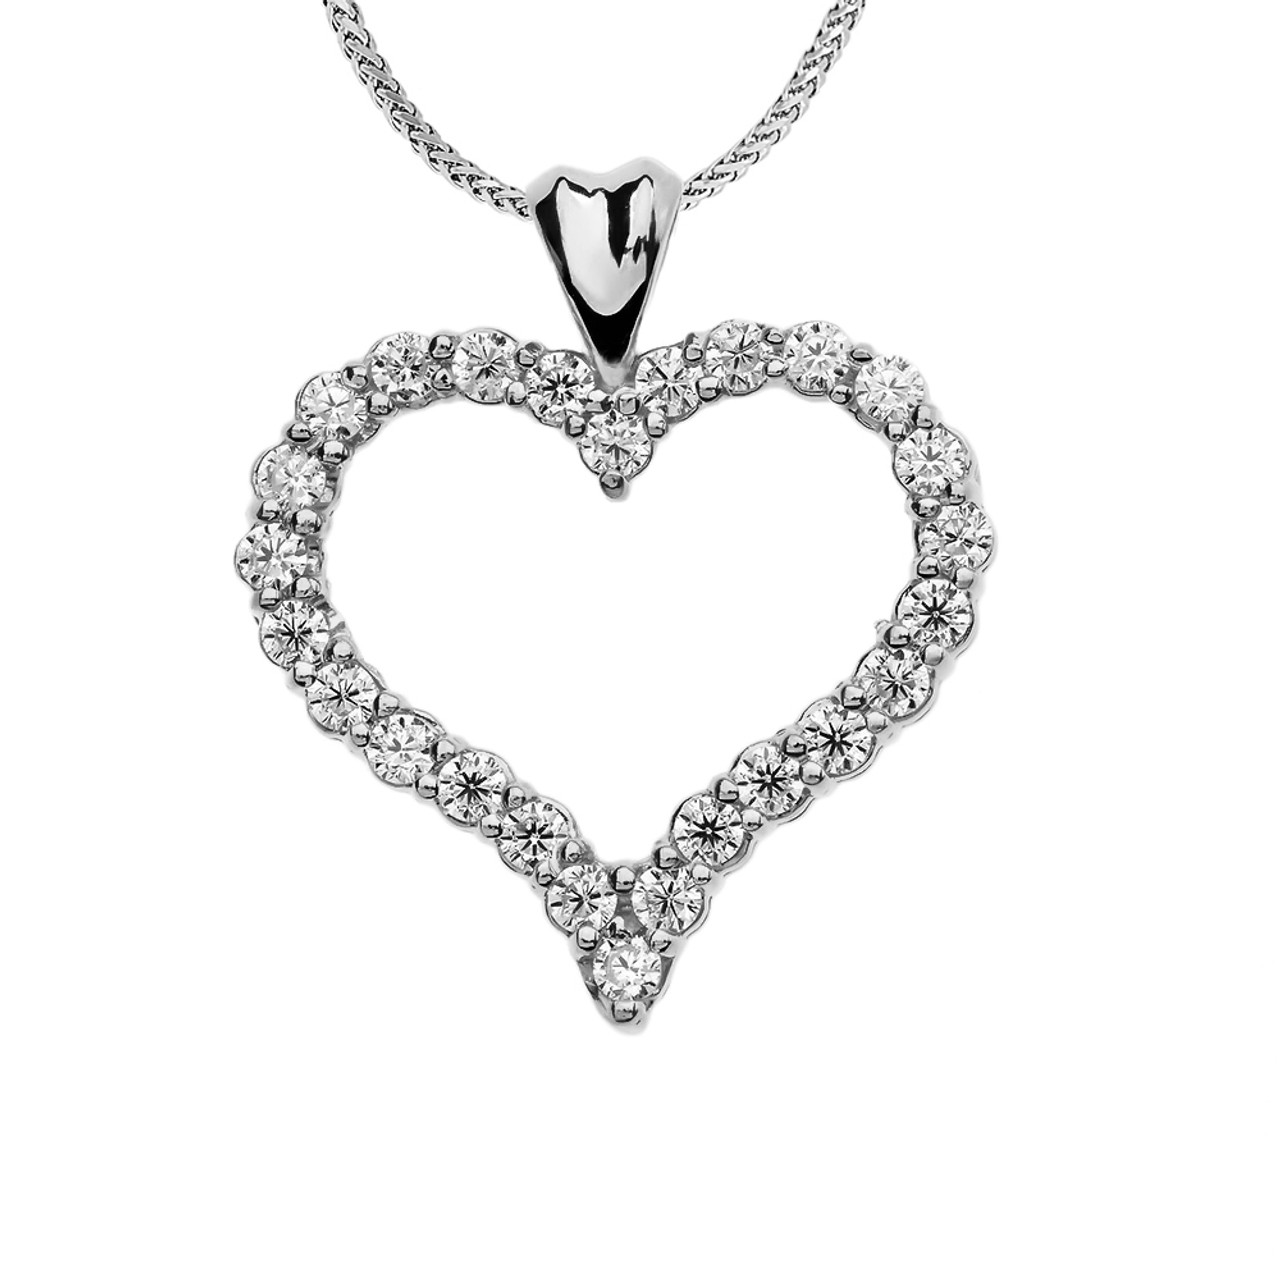 Diamond white gold heart pendant necklace 1 carat diamond heart white gold pendant necklace aloadofball Images